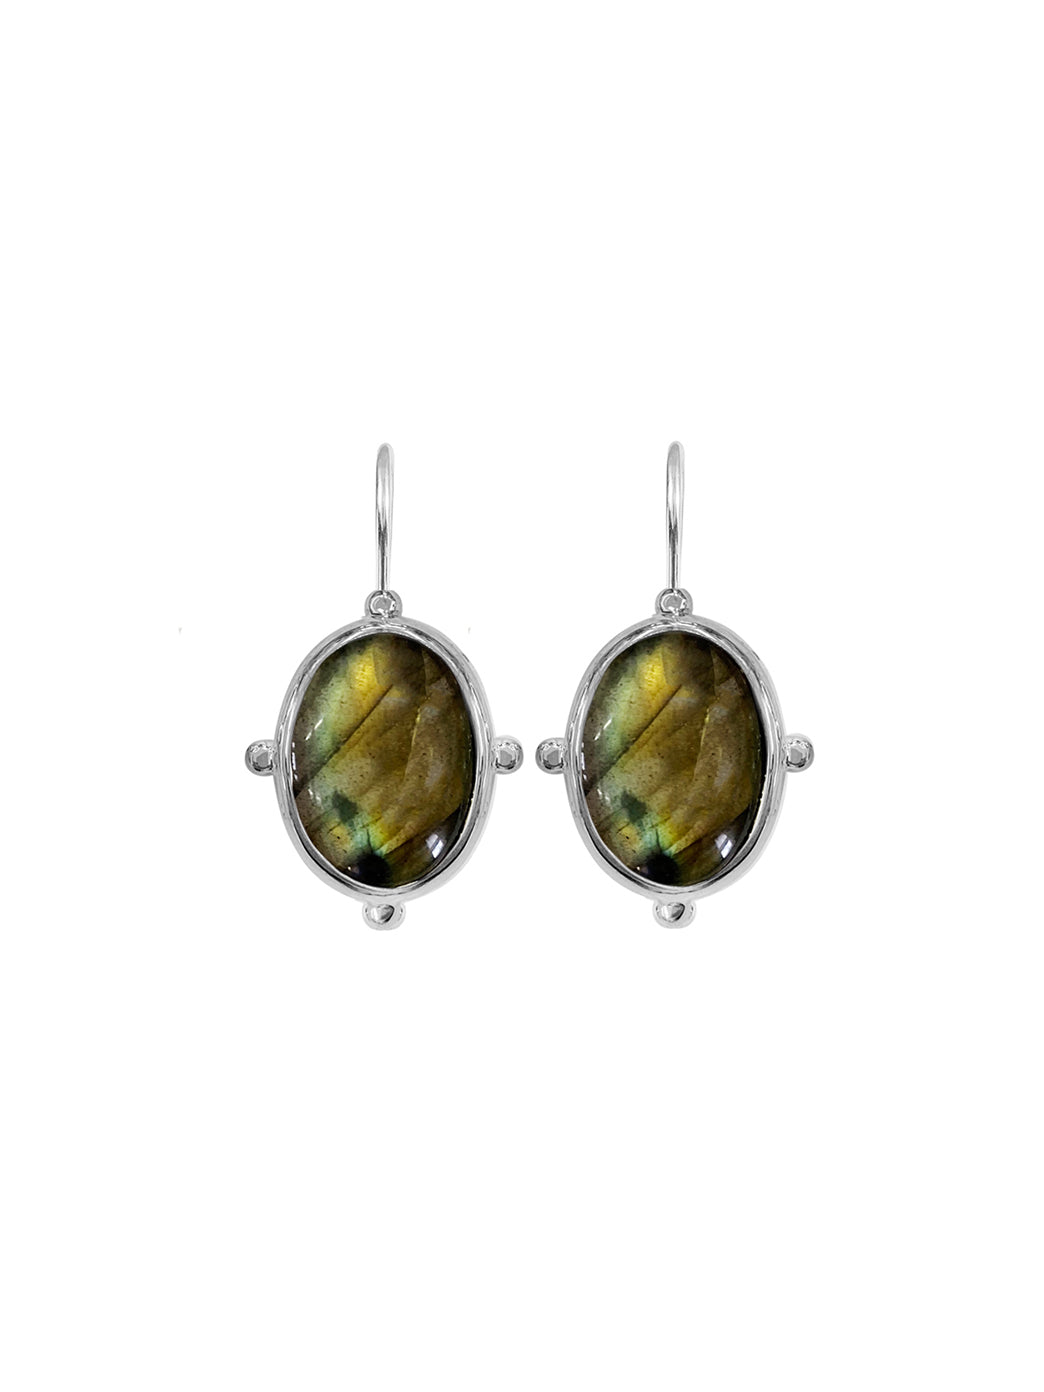 Fiorina Jewellery Oval Button Earrings Labradorite